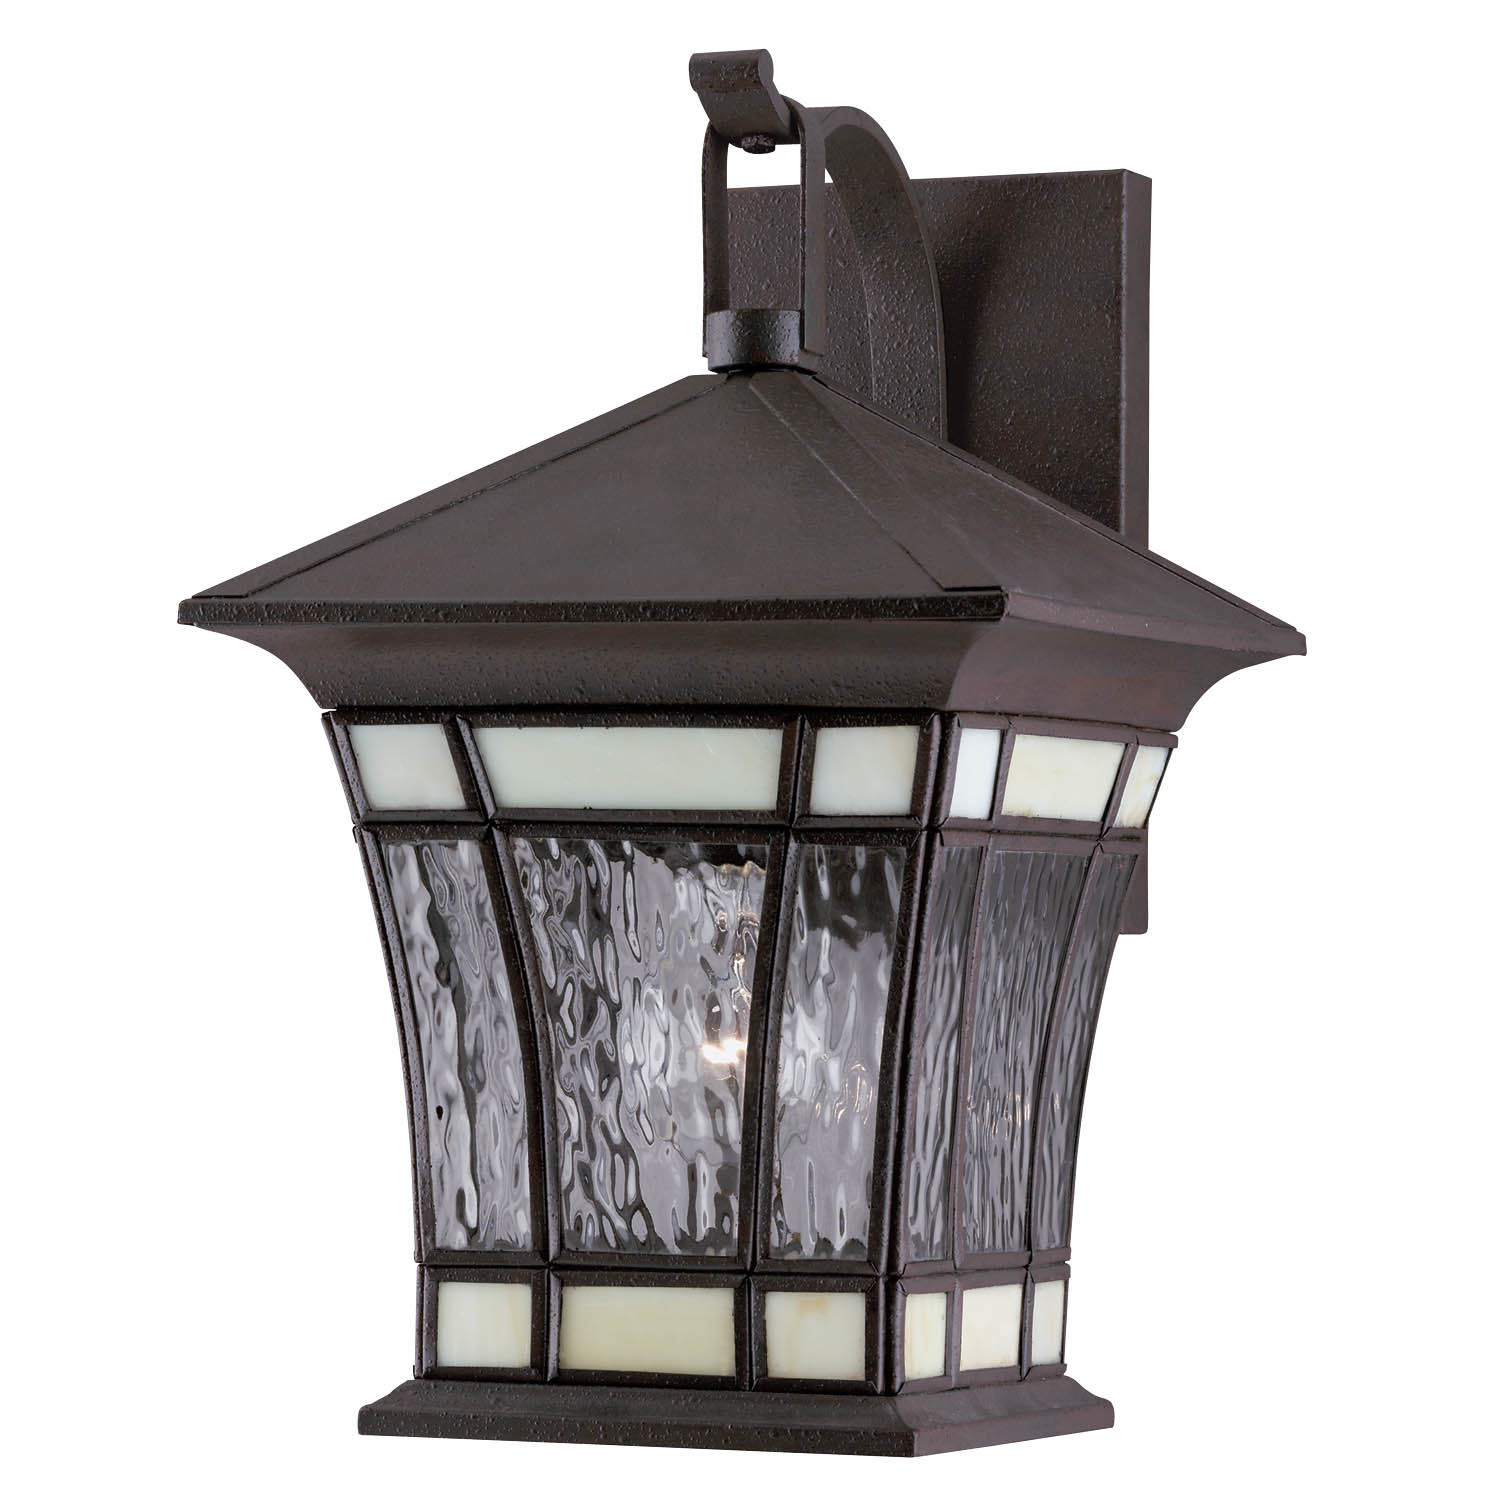 Westinghouse 6486500 One Light Rust Patina Exterior Wall Lantern